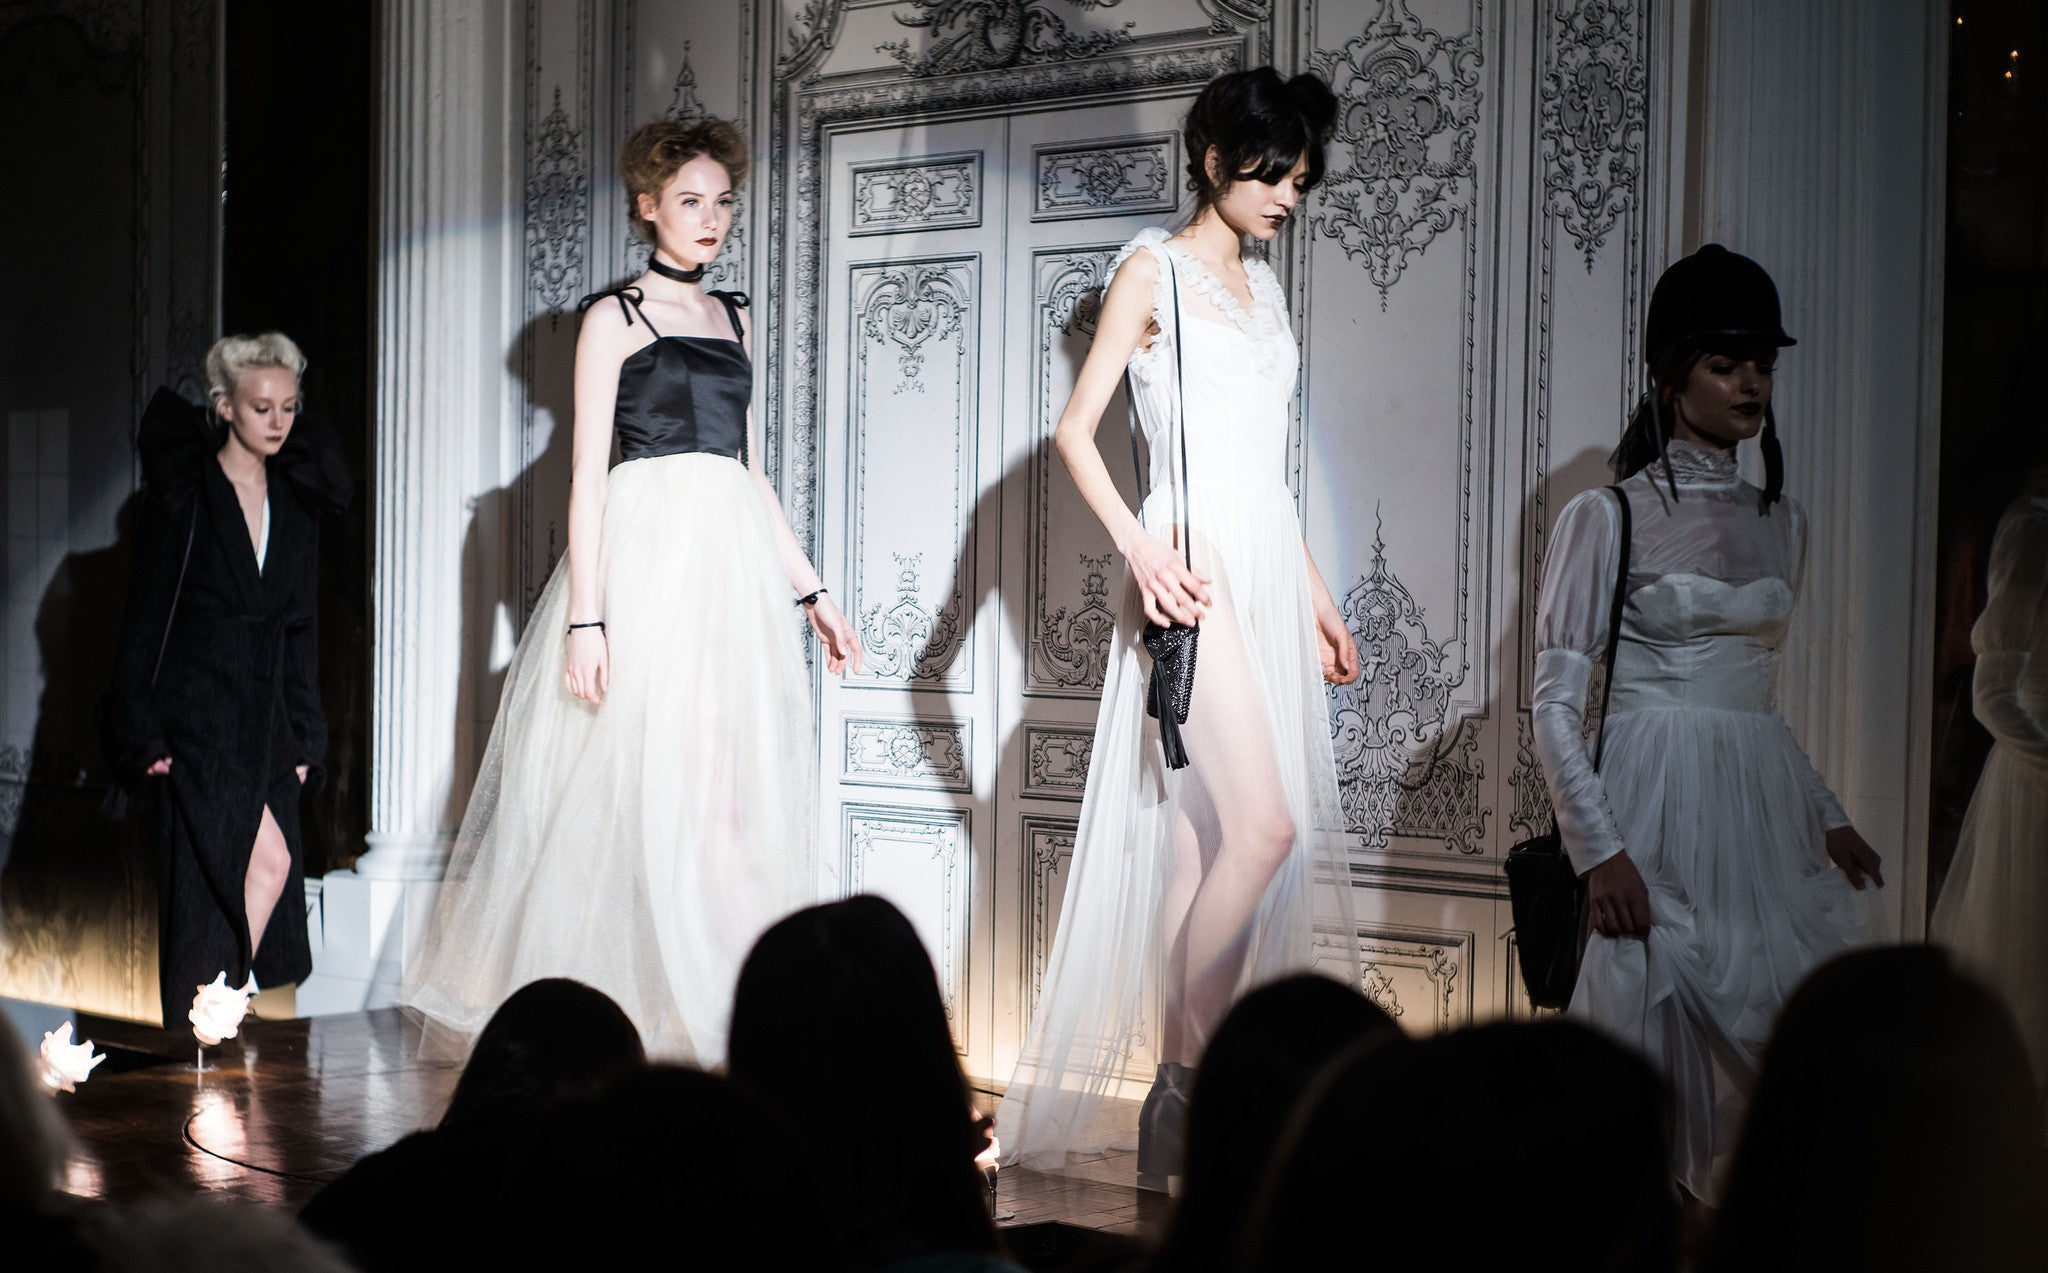 Wendy Nichol Fashion Runway Show Carl Jung the Innocent White Silk Dress IMG Model Catalina IMG Model Wendy Nichol Clothing Fashion Designer Handmade in NYC AW14 Ready to Wear Fashion Runway Show Custom Tailoring Made to Measure